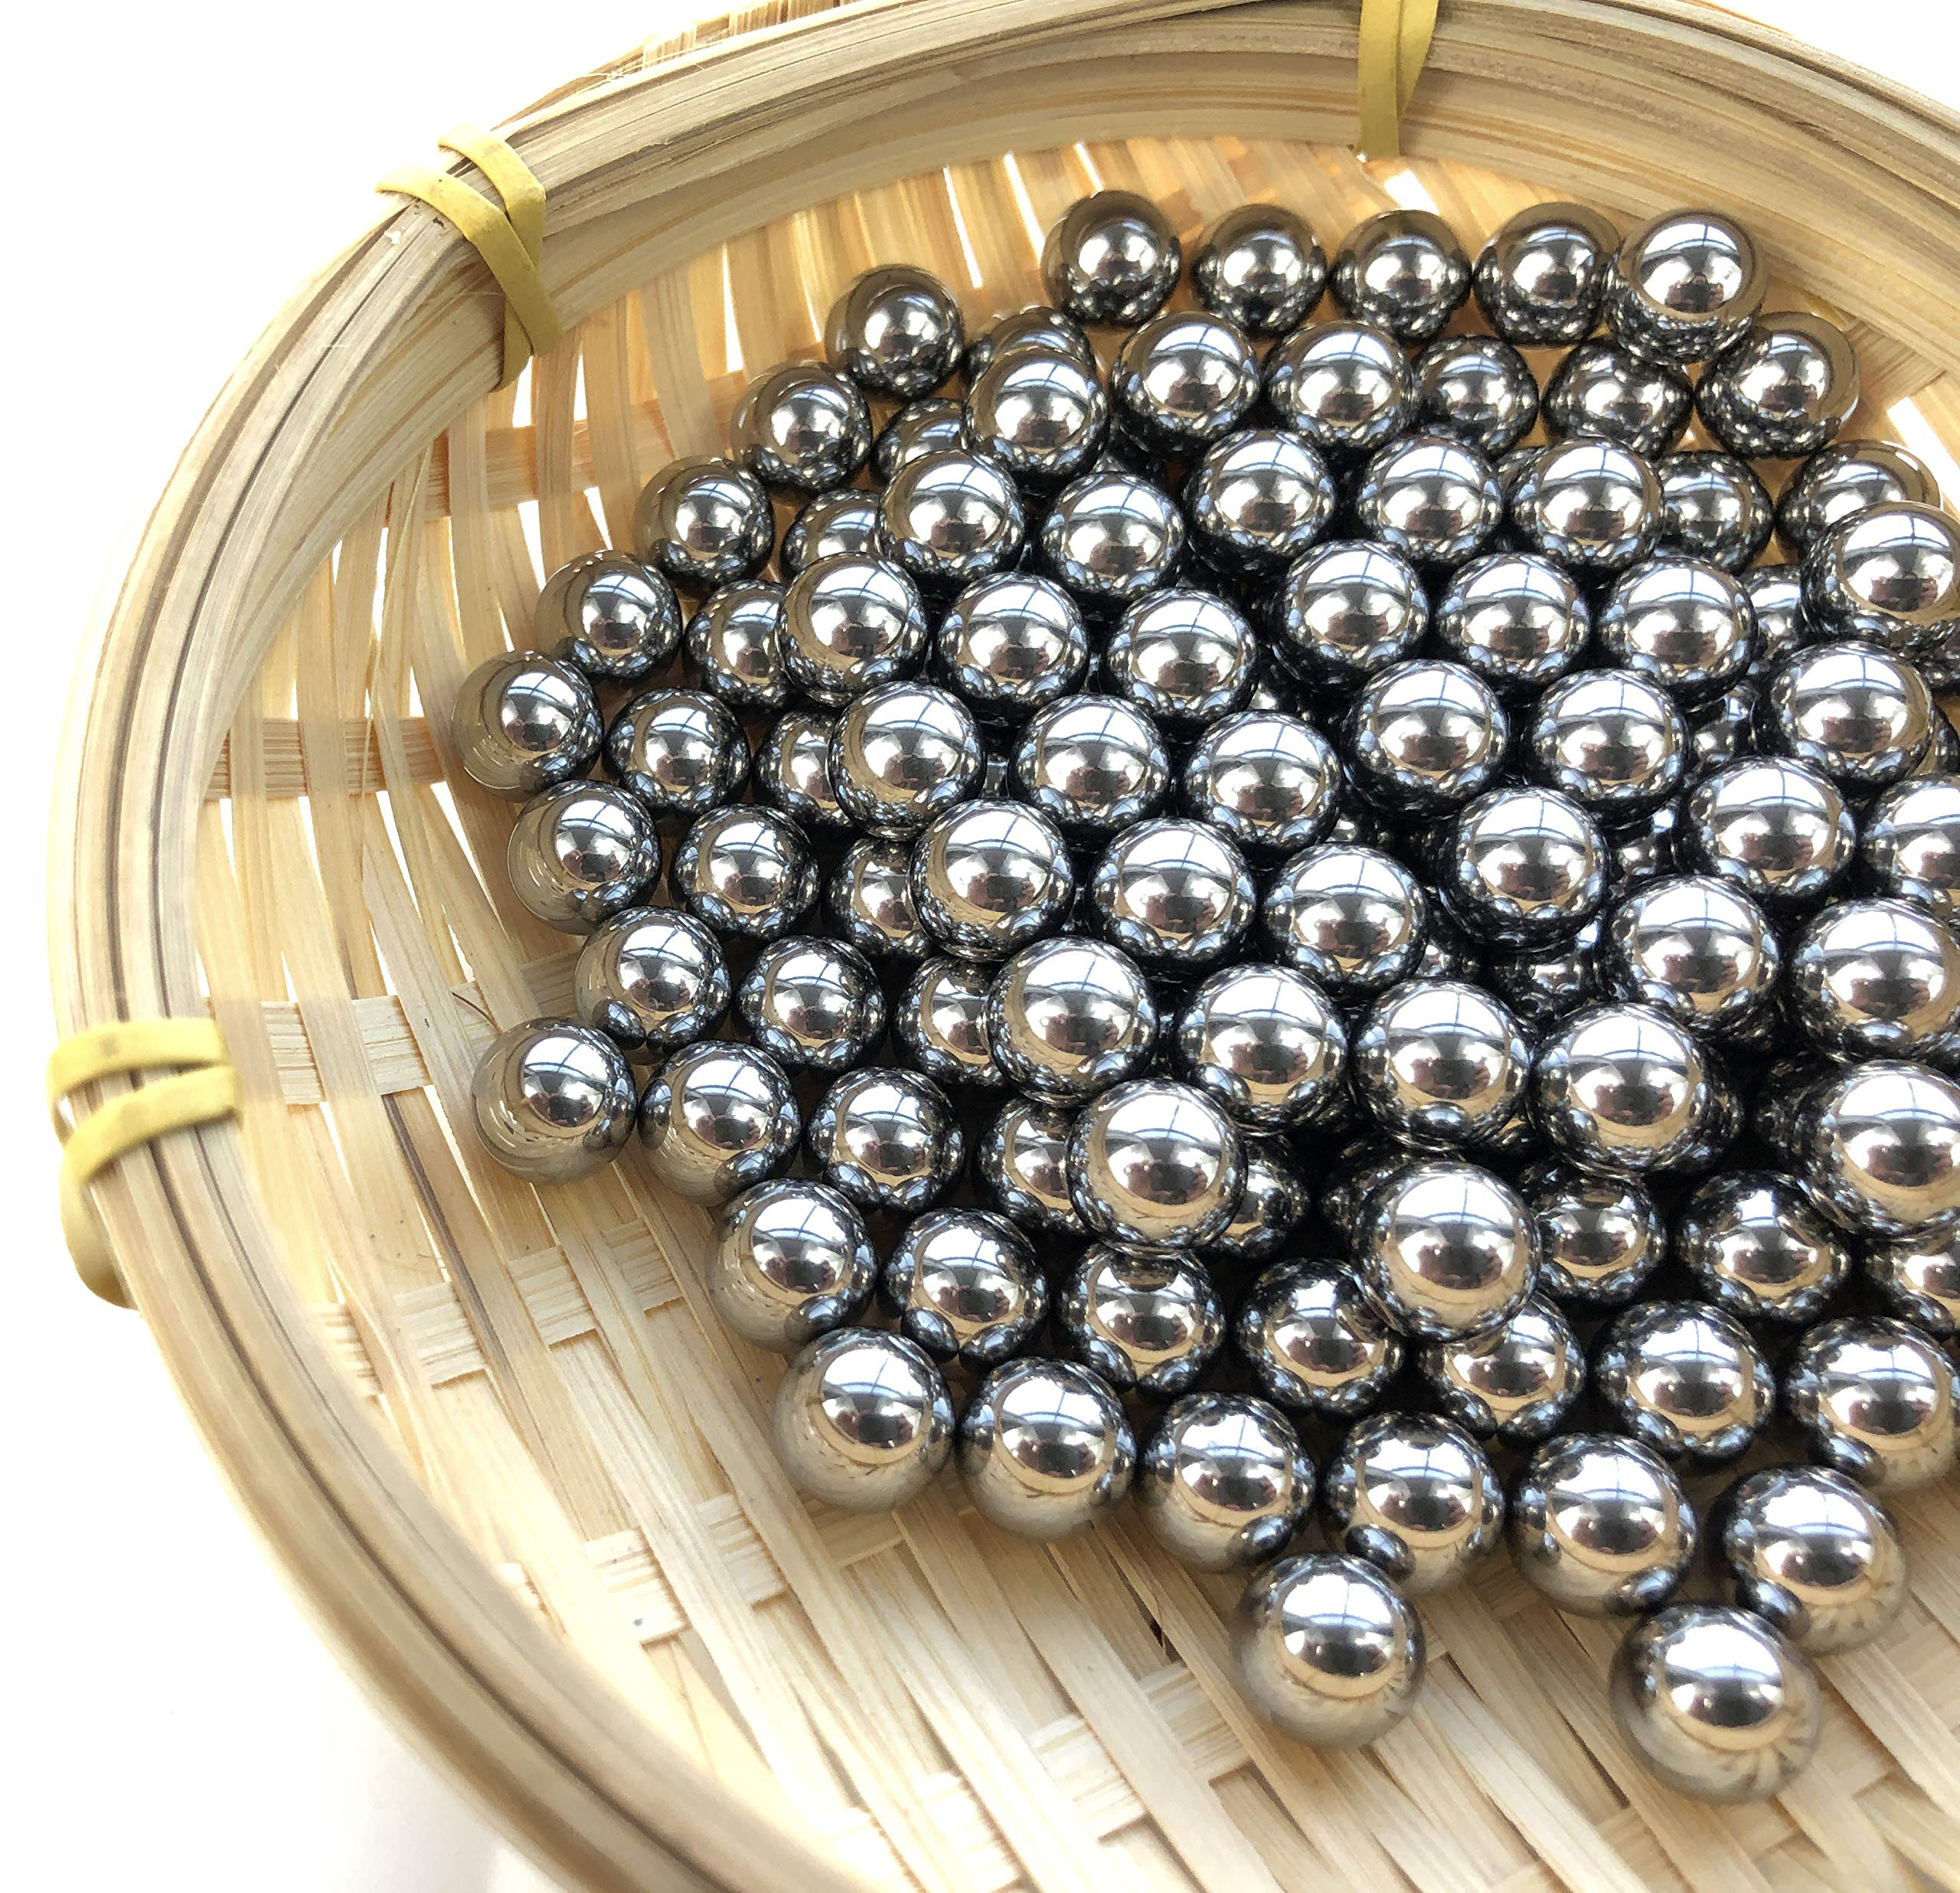 Hanchen Stainless Steel Grinding Balls Media Beads 250g Lab Ball Mill Grinding Media for Lab Planetary Ball Mill (1mm, 440) by Hanchen (Image #9)